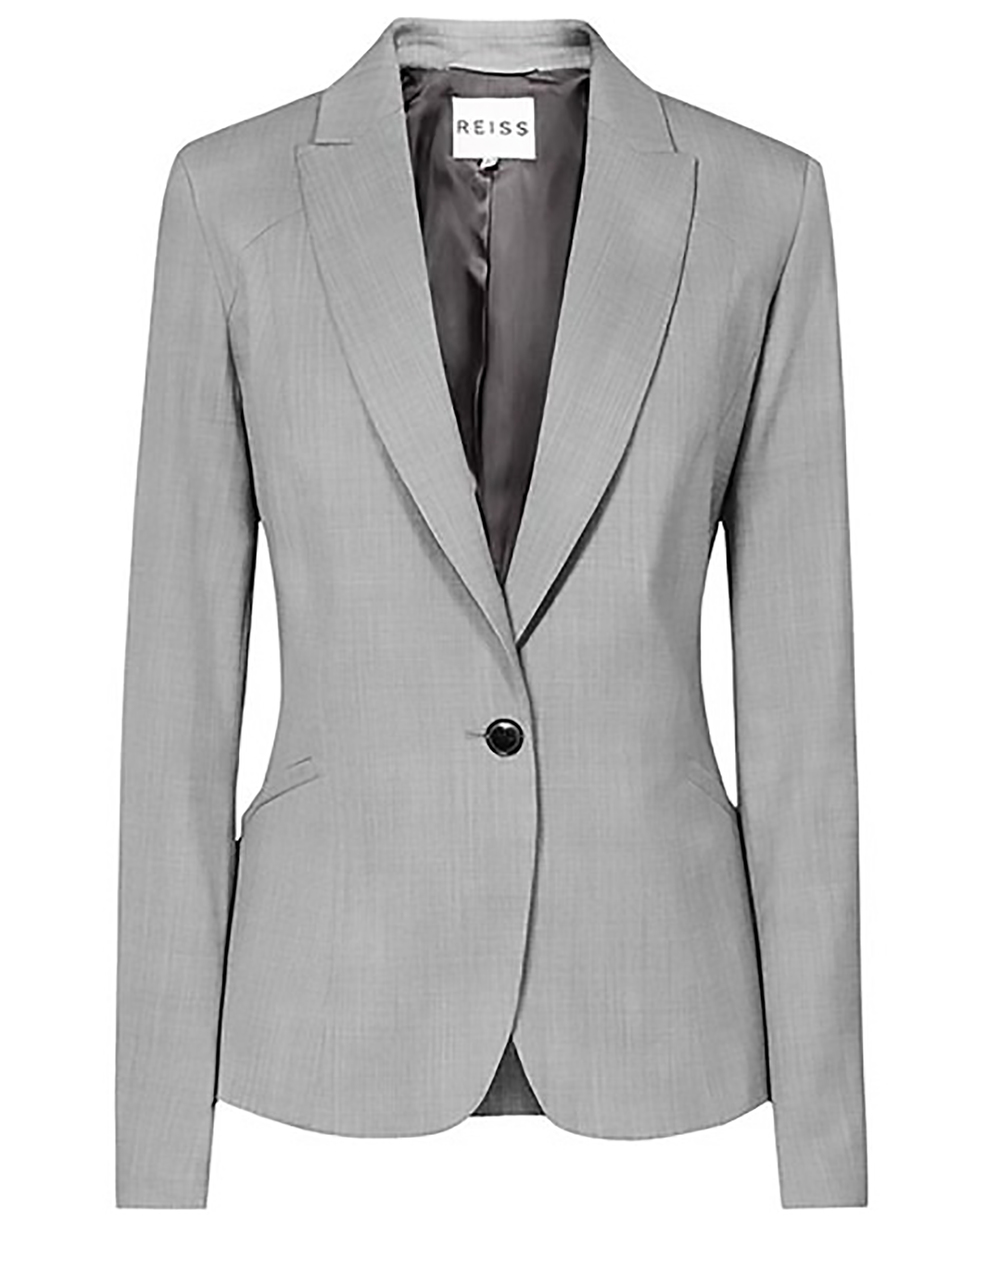 reiss tomley arc tailored jacket mid grey reiss 1500.jpg